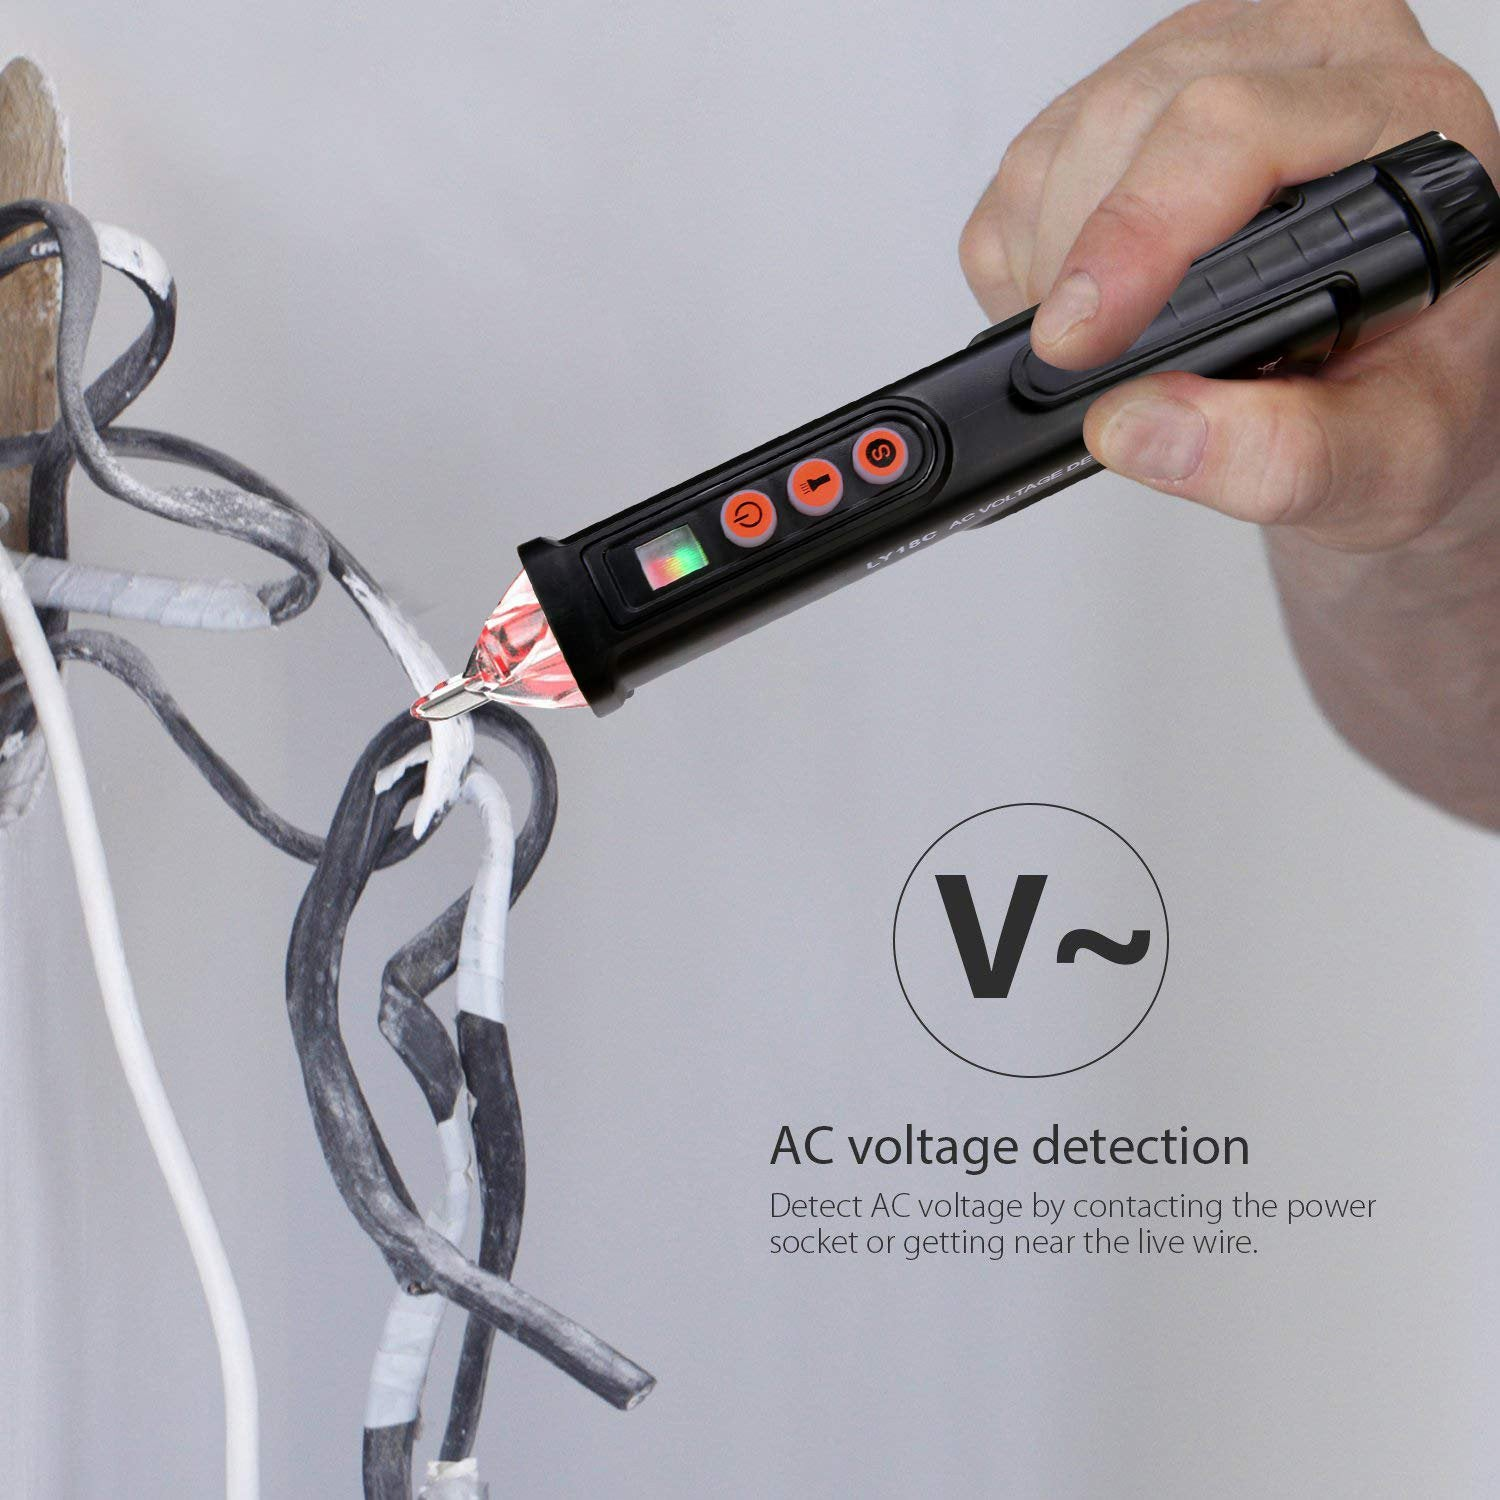 Hot Sale-AC/DC Voltage Test Pencil, 12V/48V-1000V Voltage Sensitivity Electric Compact Pen